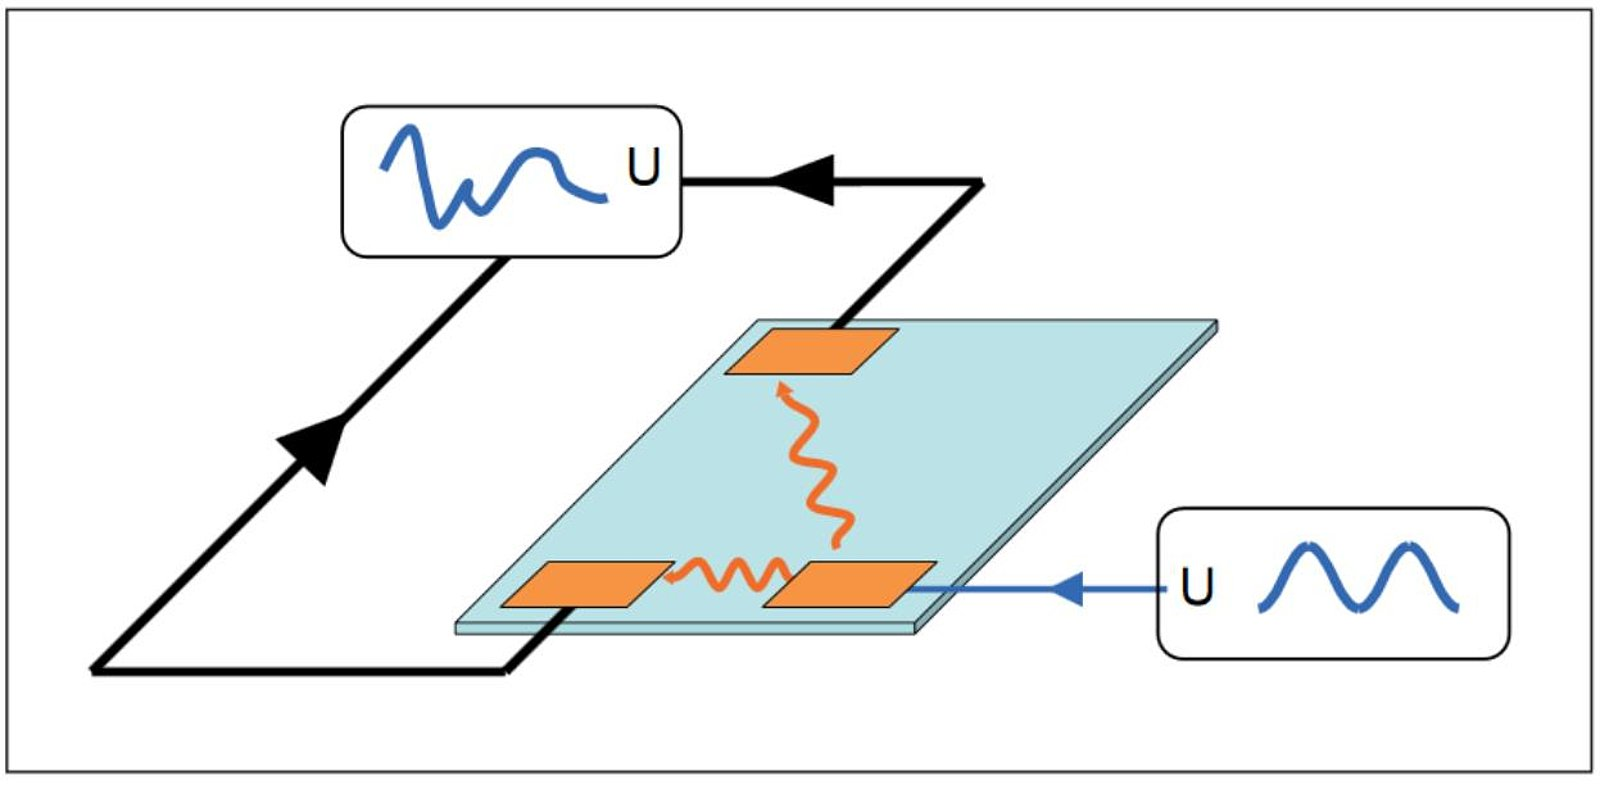 Ultrasonic Piezo Transducers From Welding To Medical Applications Rod Wiring Diagrams Structural Health Monitoring System Using The Direct And Inverse Effect